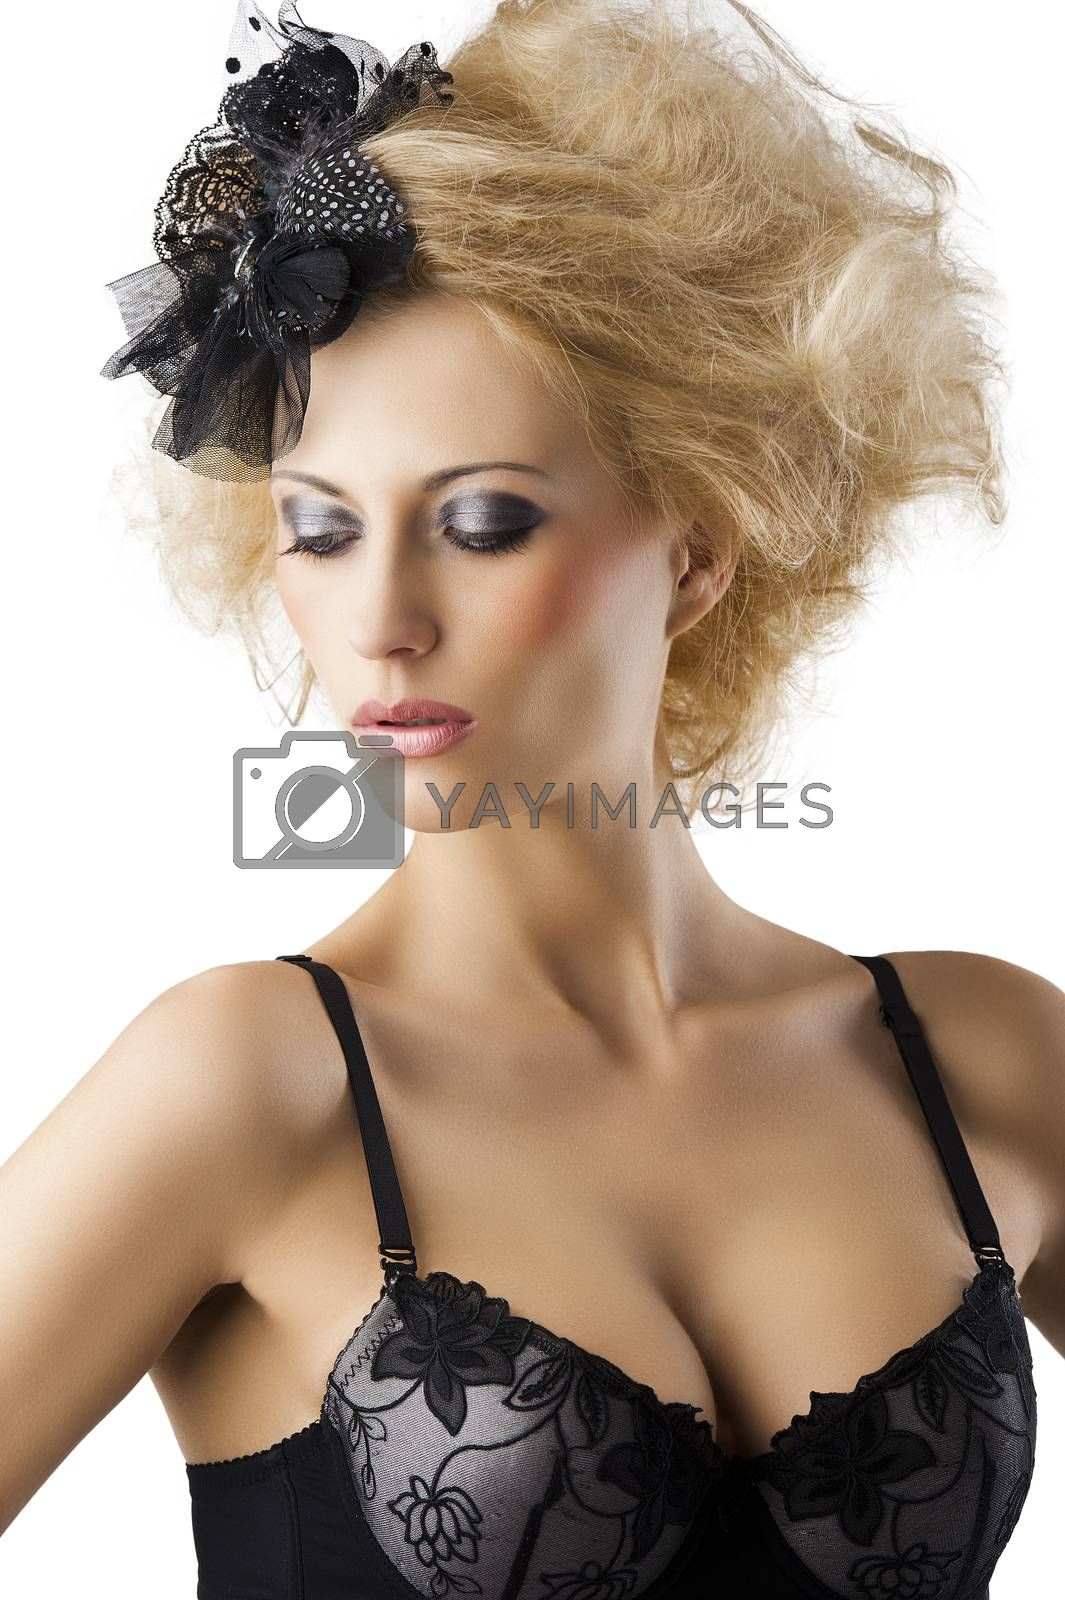 Royalty free image of blond hairstyle sexy girl with bra underwear, she looks down  by fotoCD